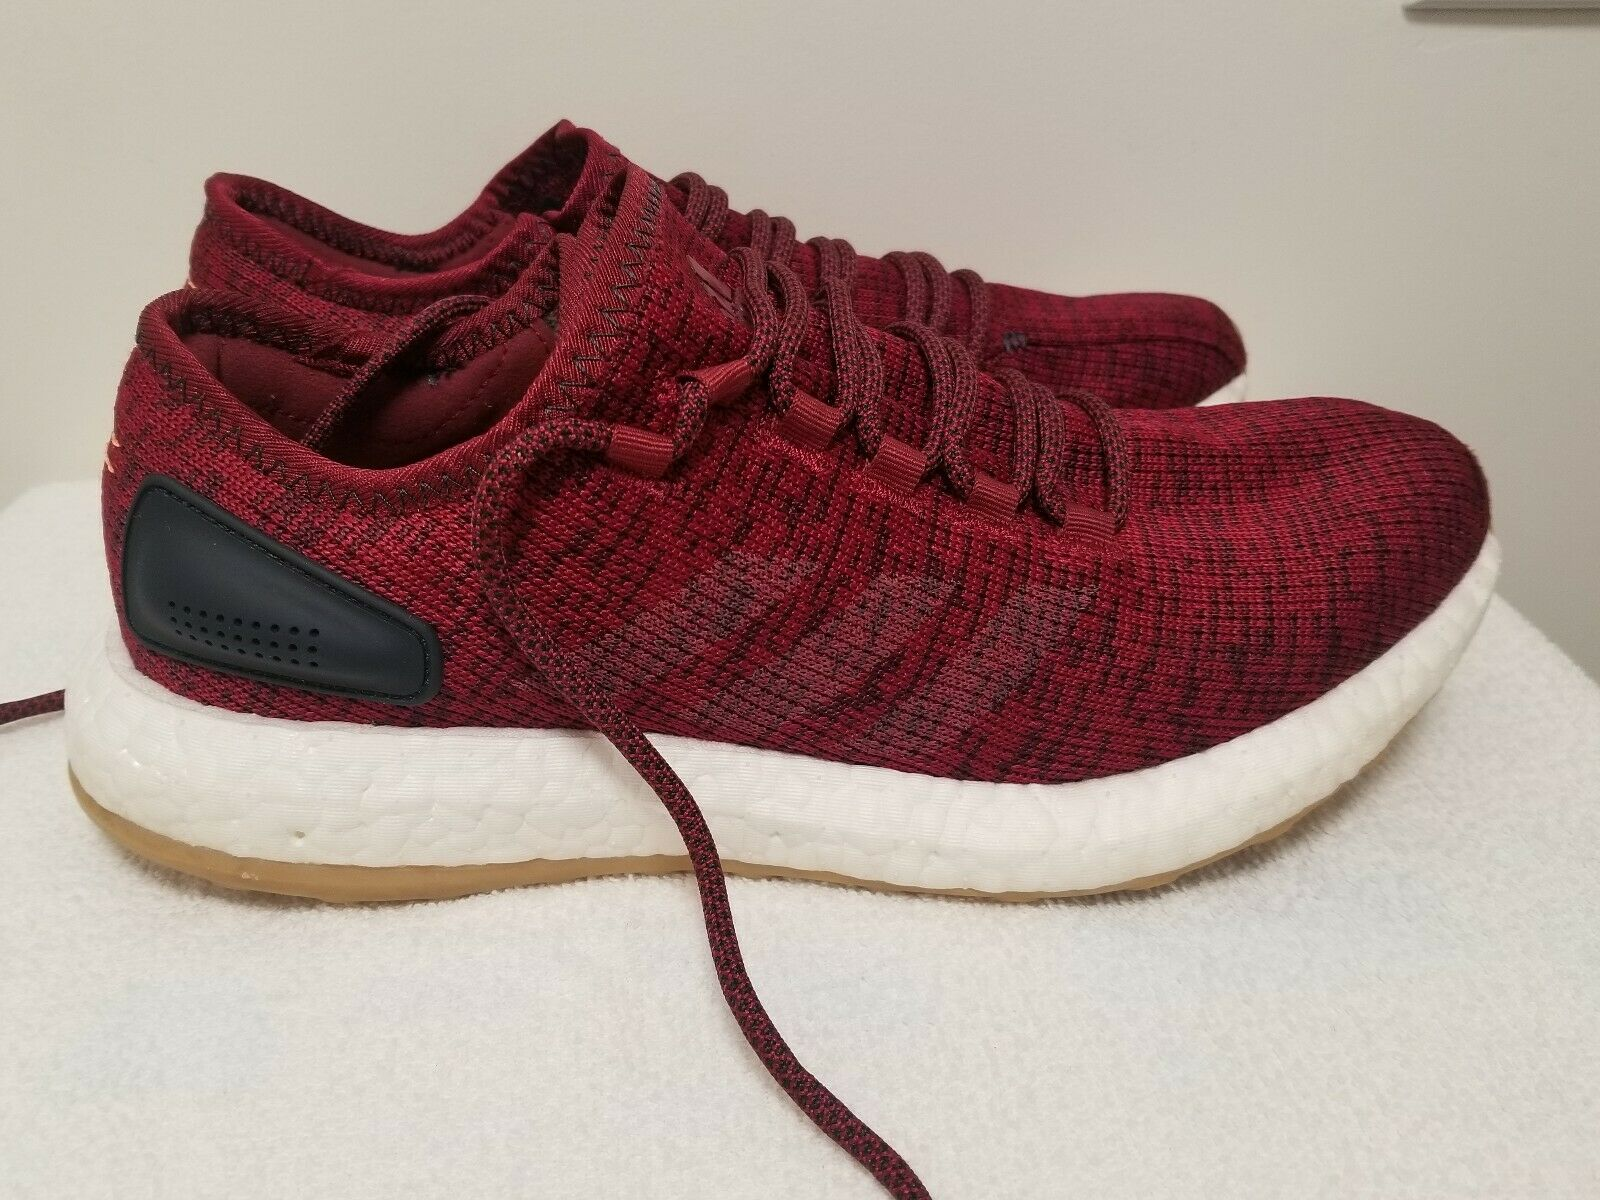 ADIDAS PURE BOOST BA8895 SHOES MEN SIZE 8.5  BURGANDY MAROON .